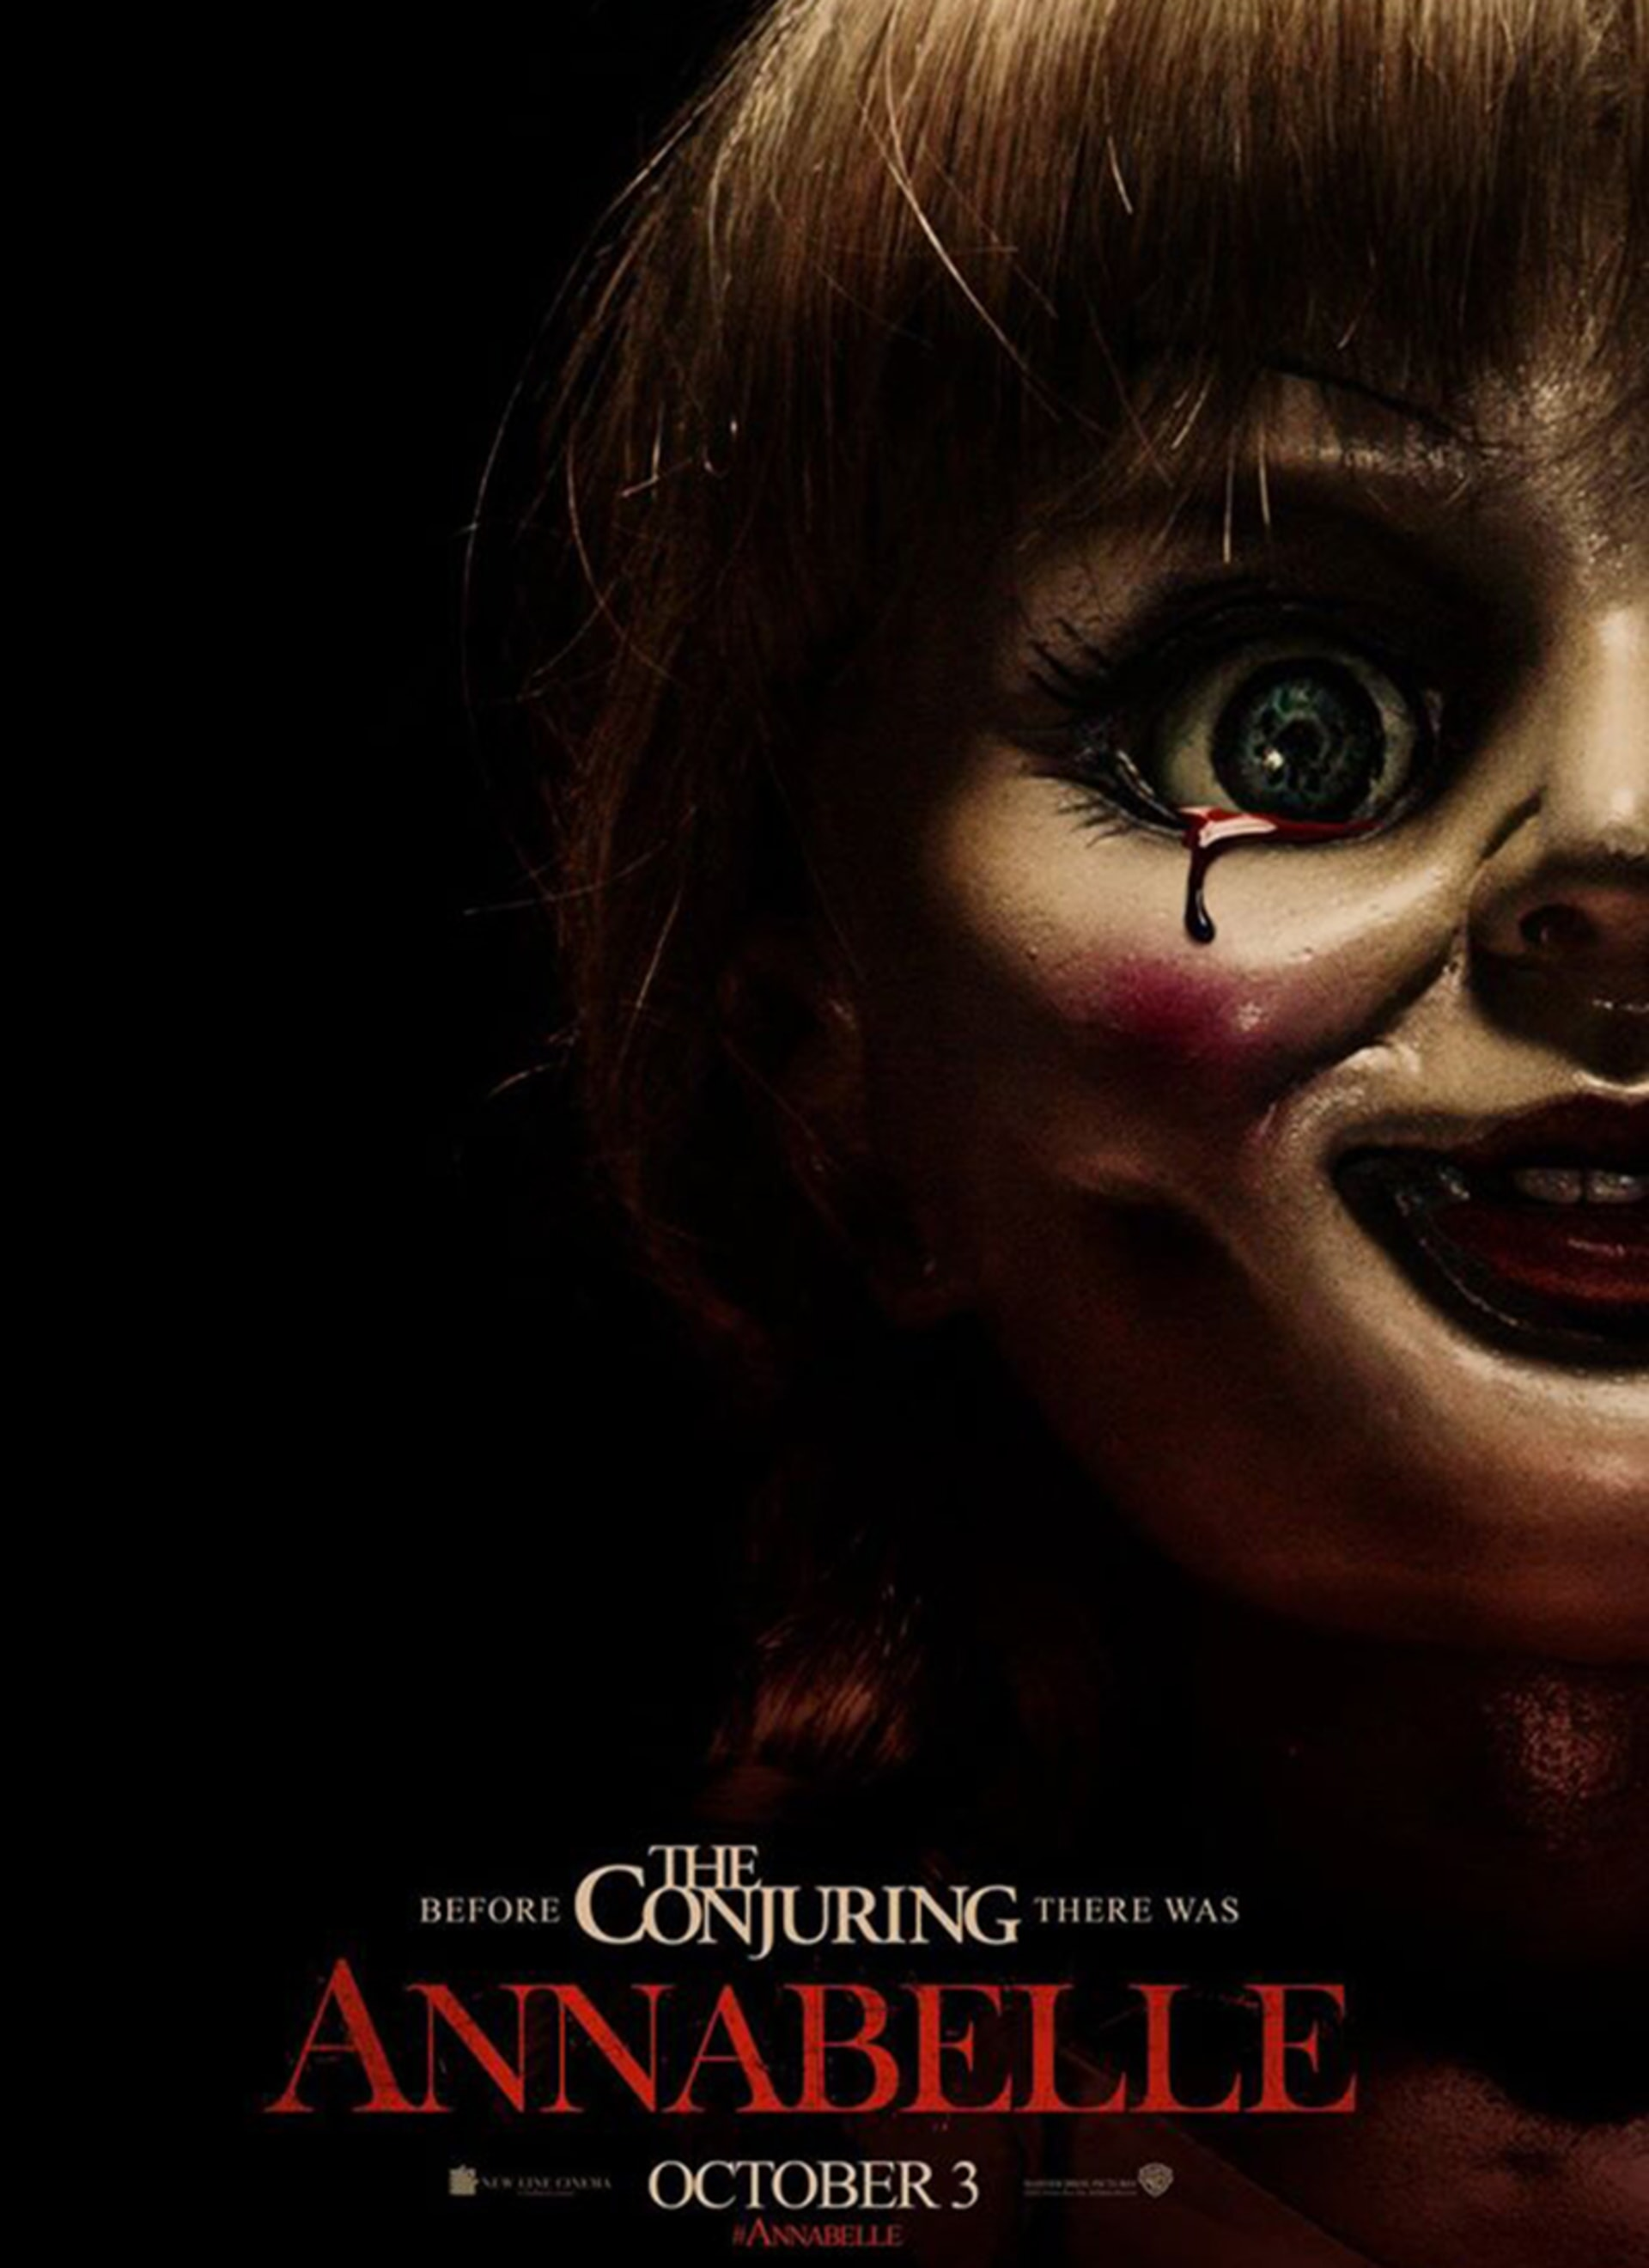 Annabelle - Poster 1